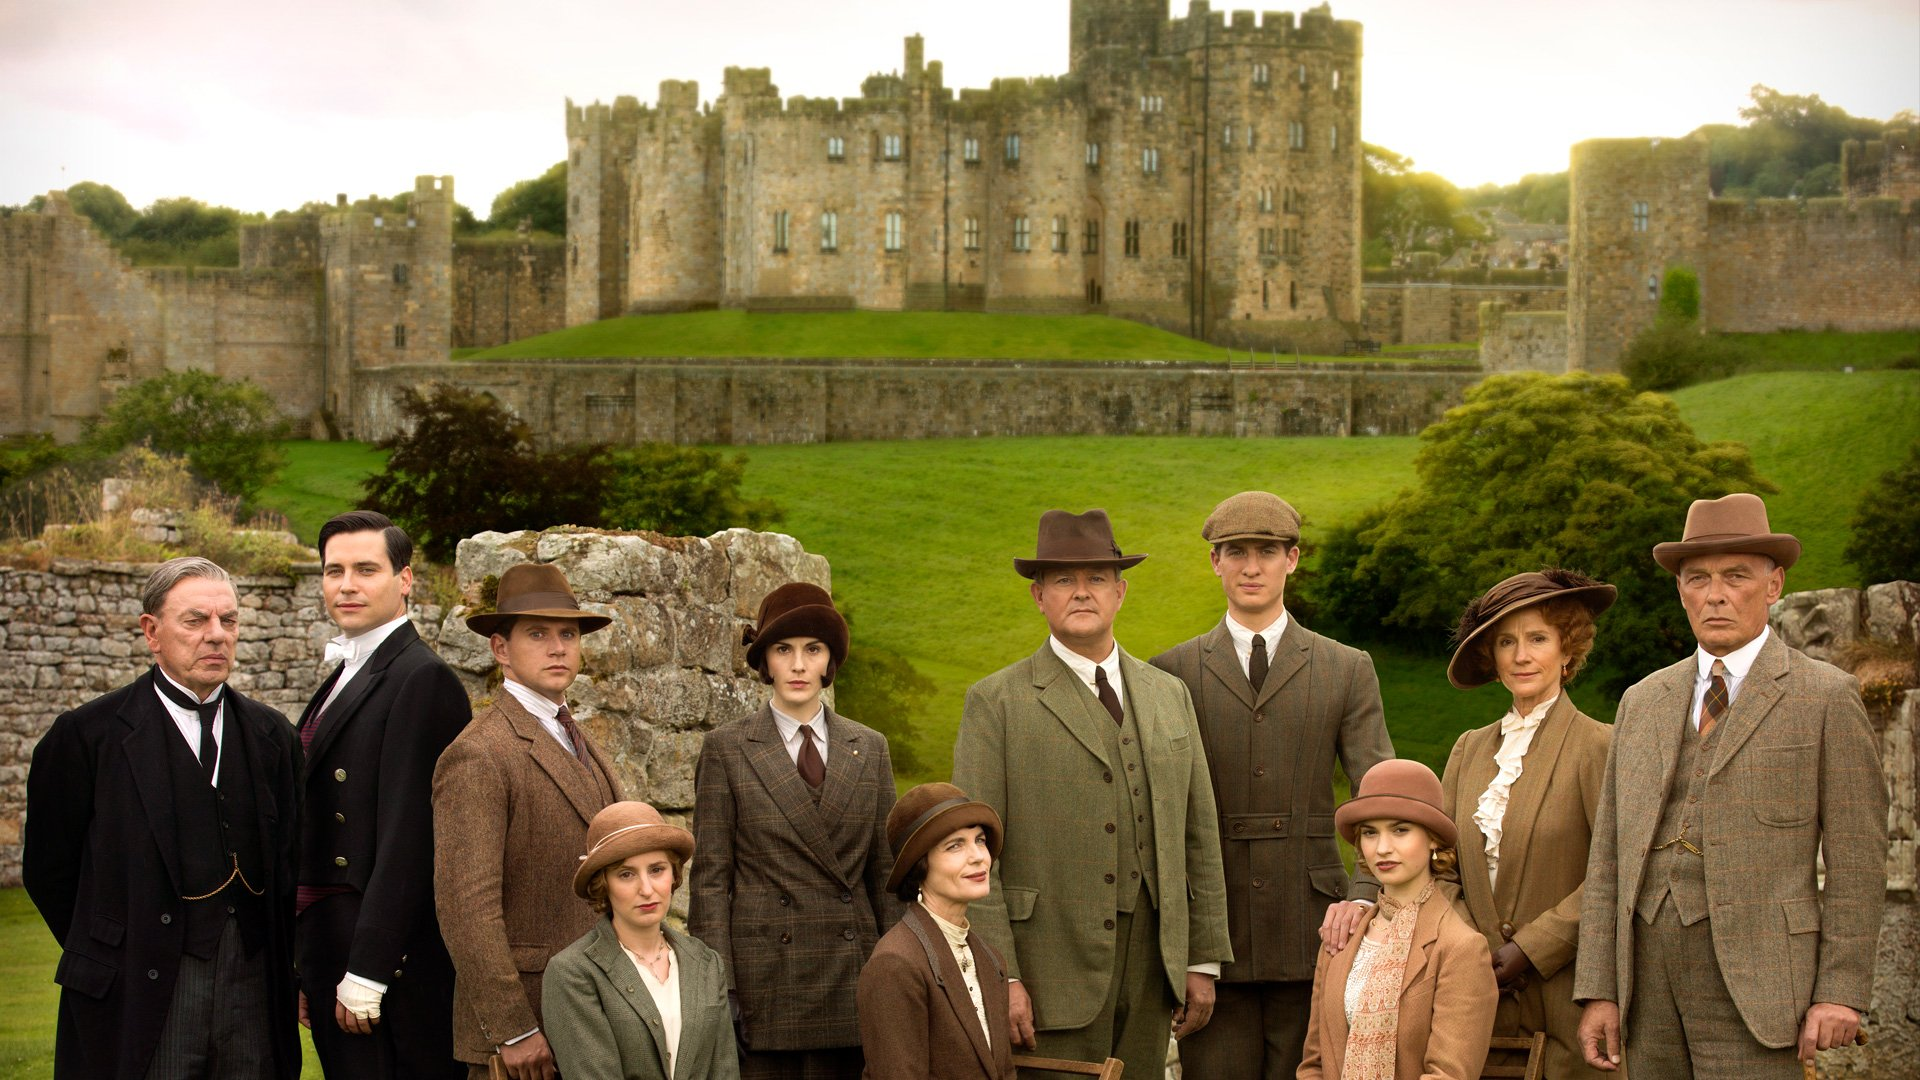 downtown abbey tweed